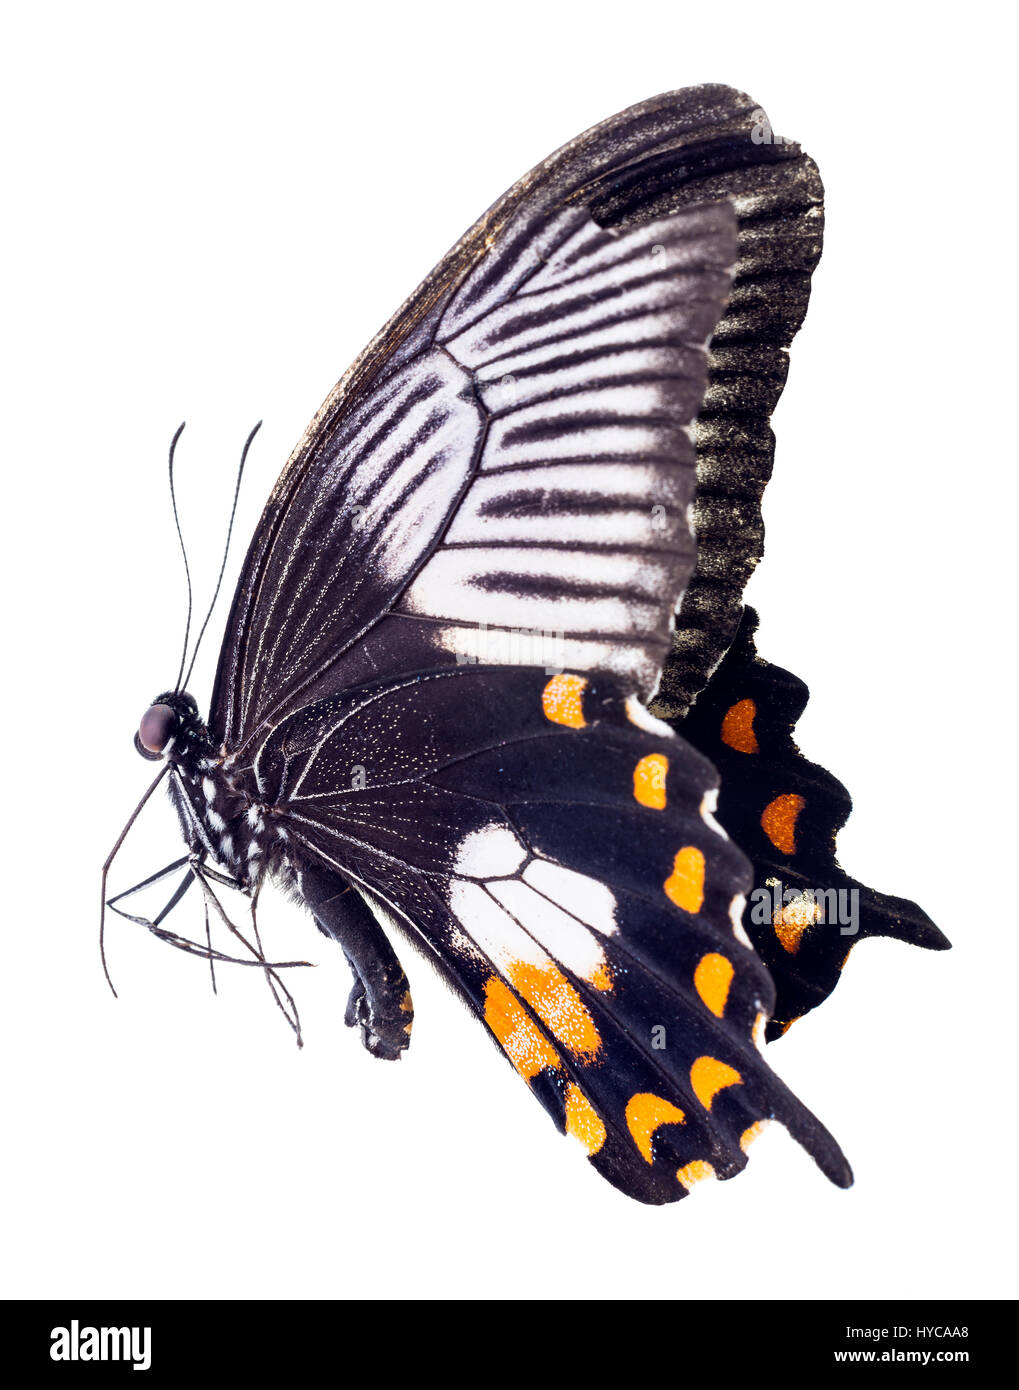 A female Common Mormon Butterfly, Papilio polytes - Stock Image